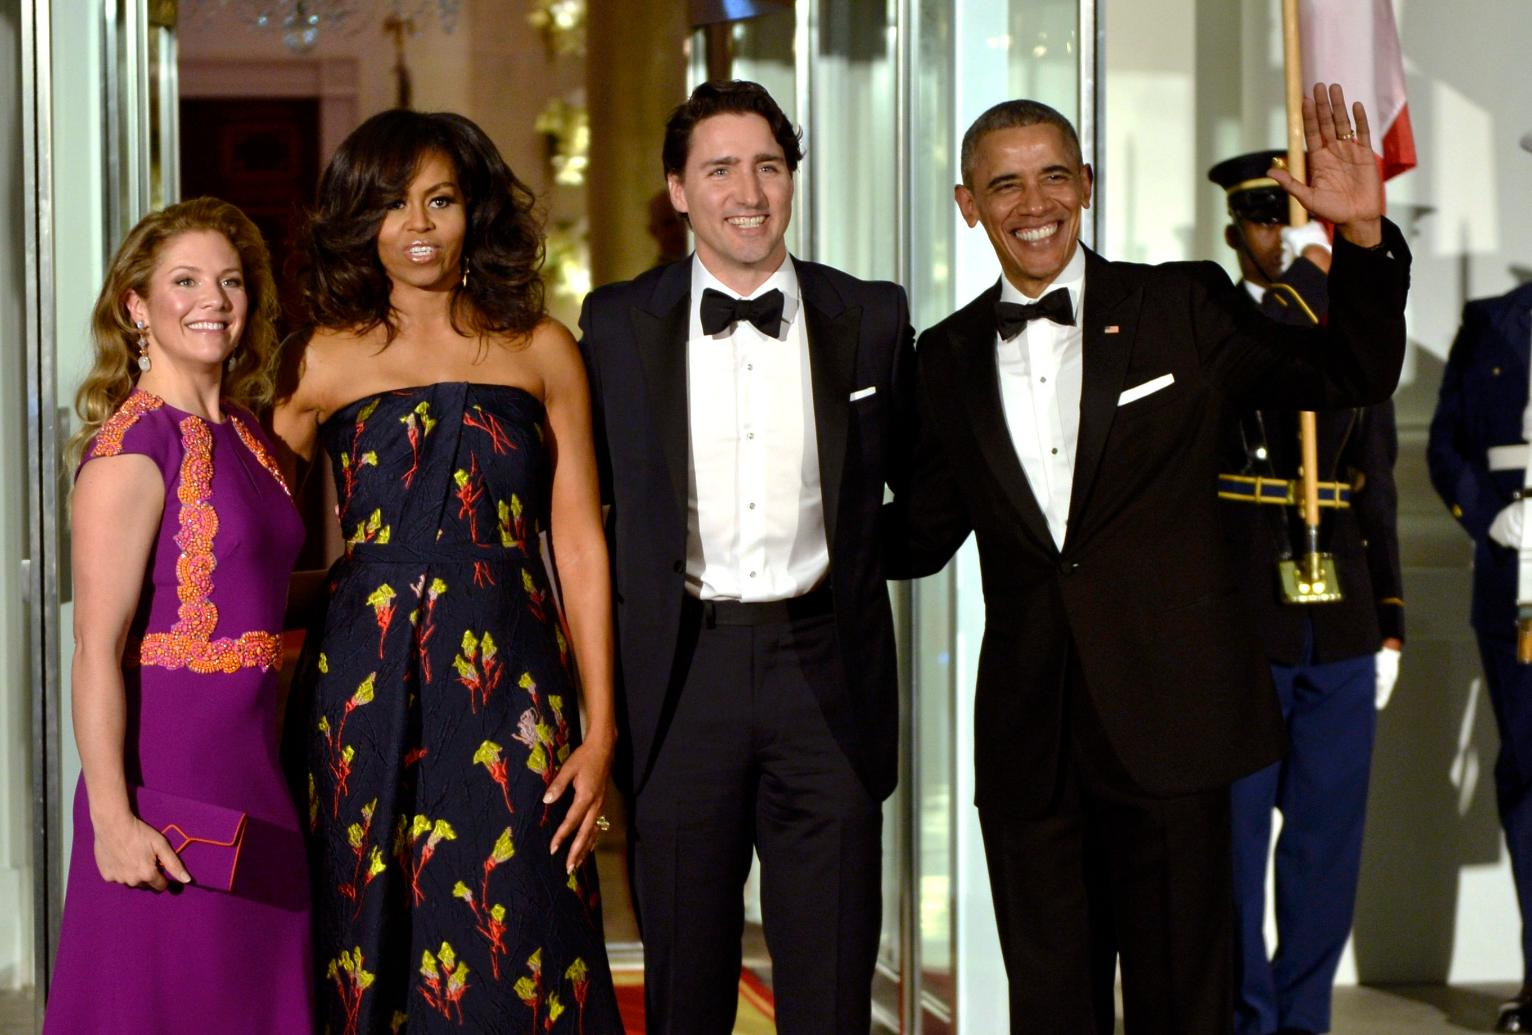 Used Cars In House Financing >> Photos: Guests at the White House State Dinner for Justin Trudeau | US News